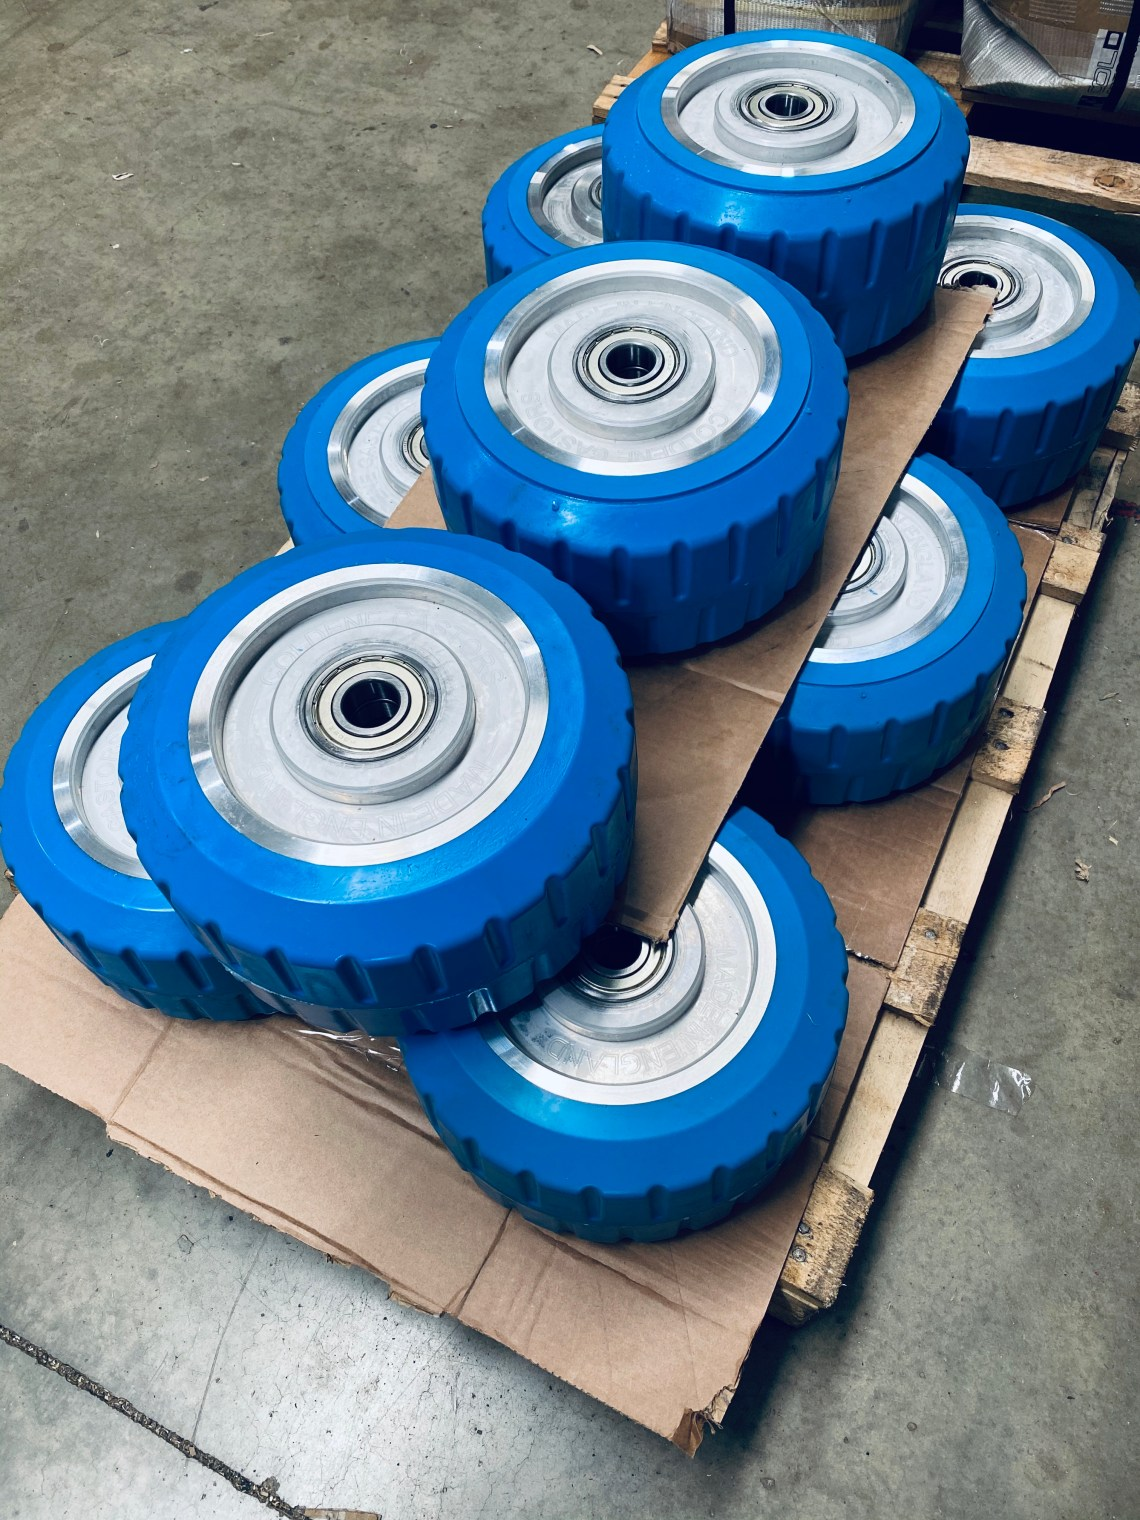 Polyurethane Wheels - AGV Wheels - Drive Wheels - Polyurethane products -